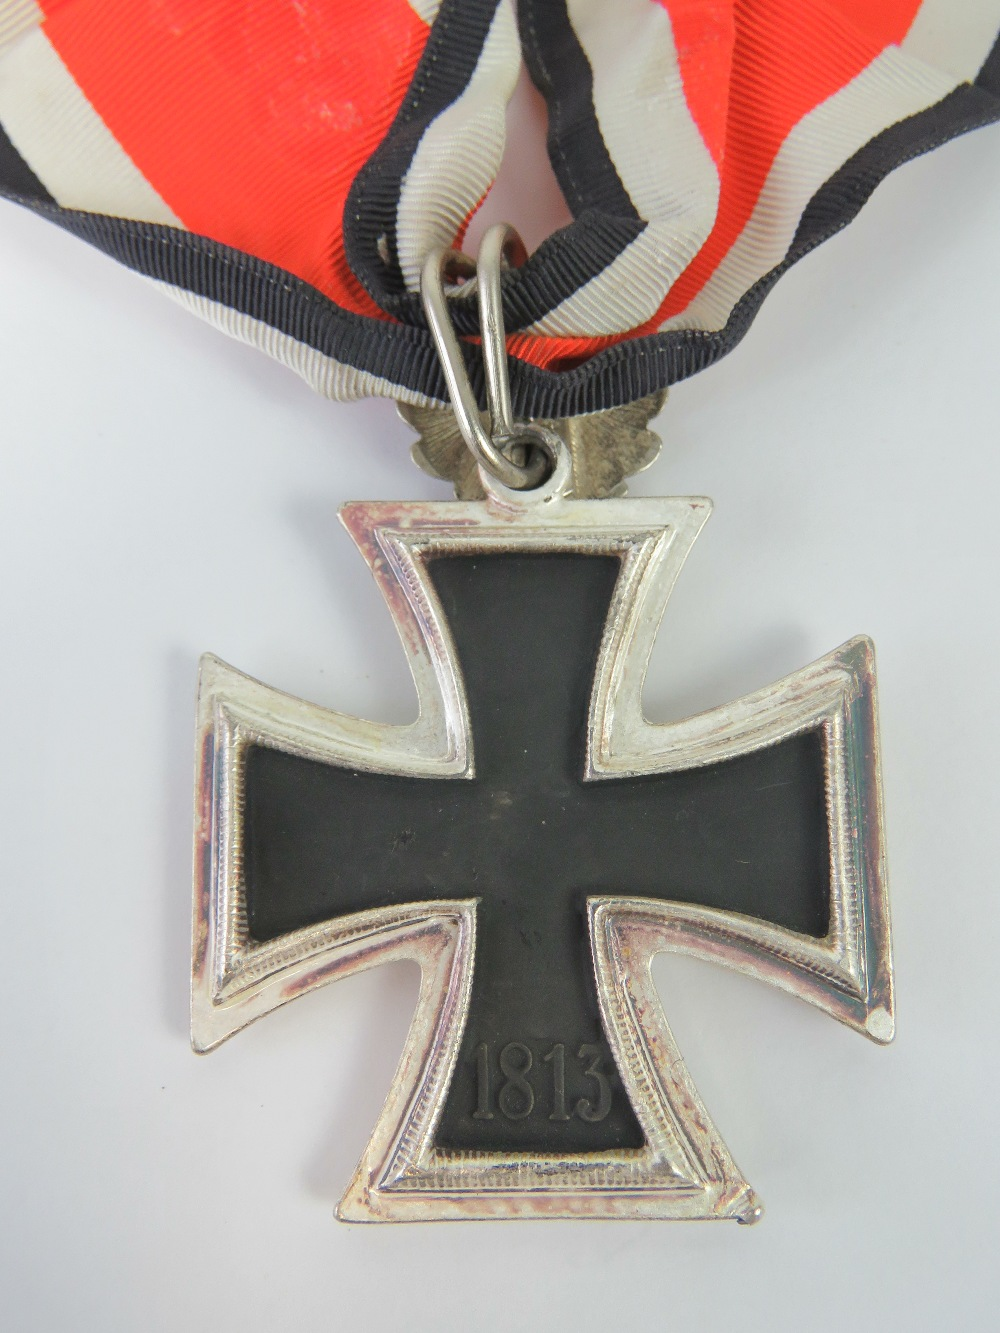 Lot 13 - A WWII German Knights Cross medal with Oak Leaves and ribbon.